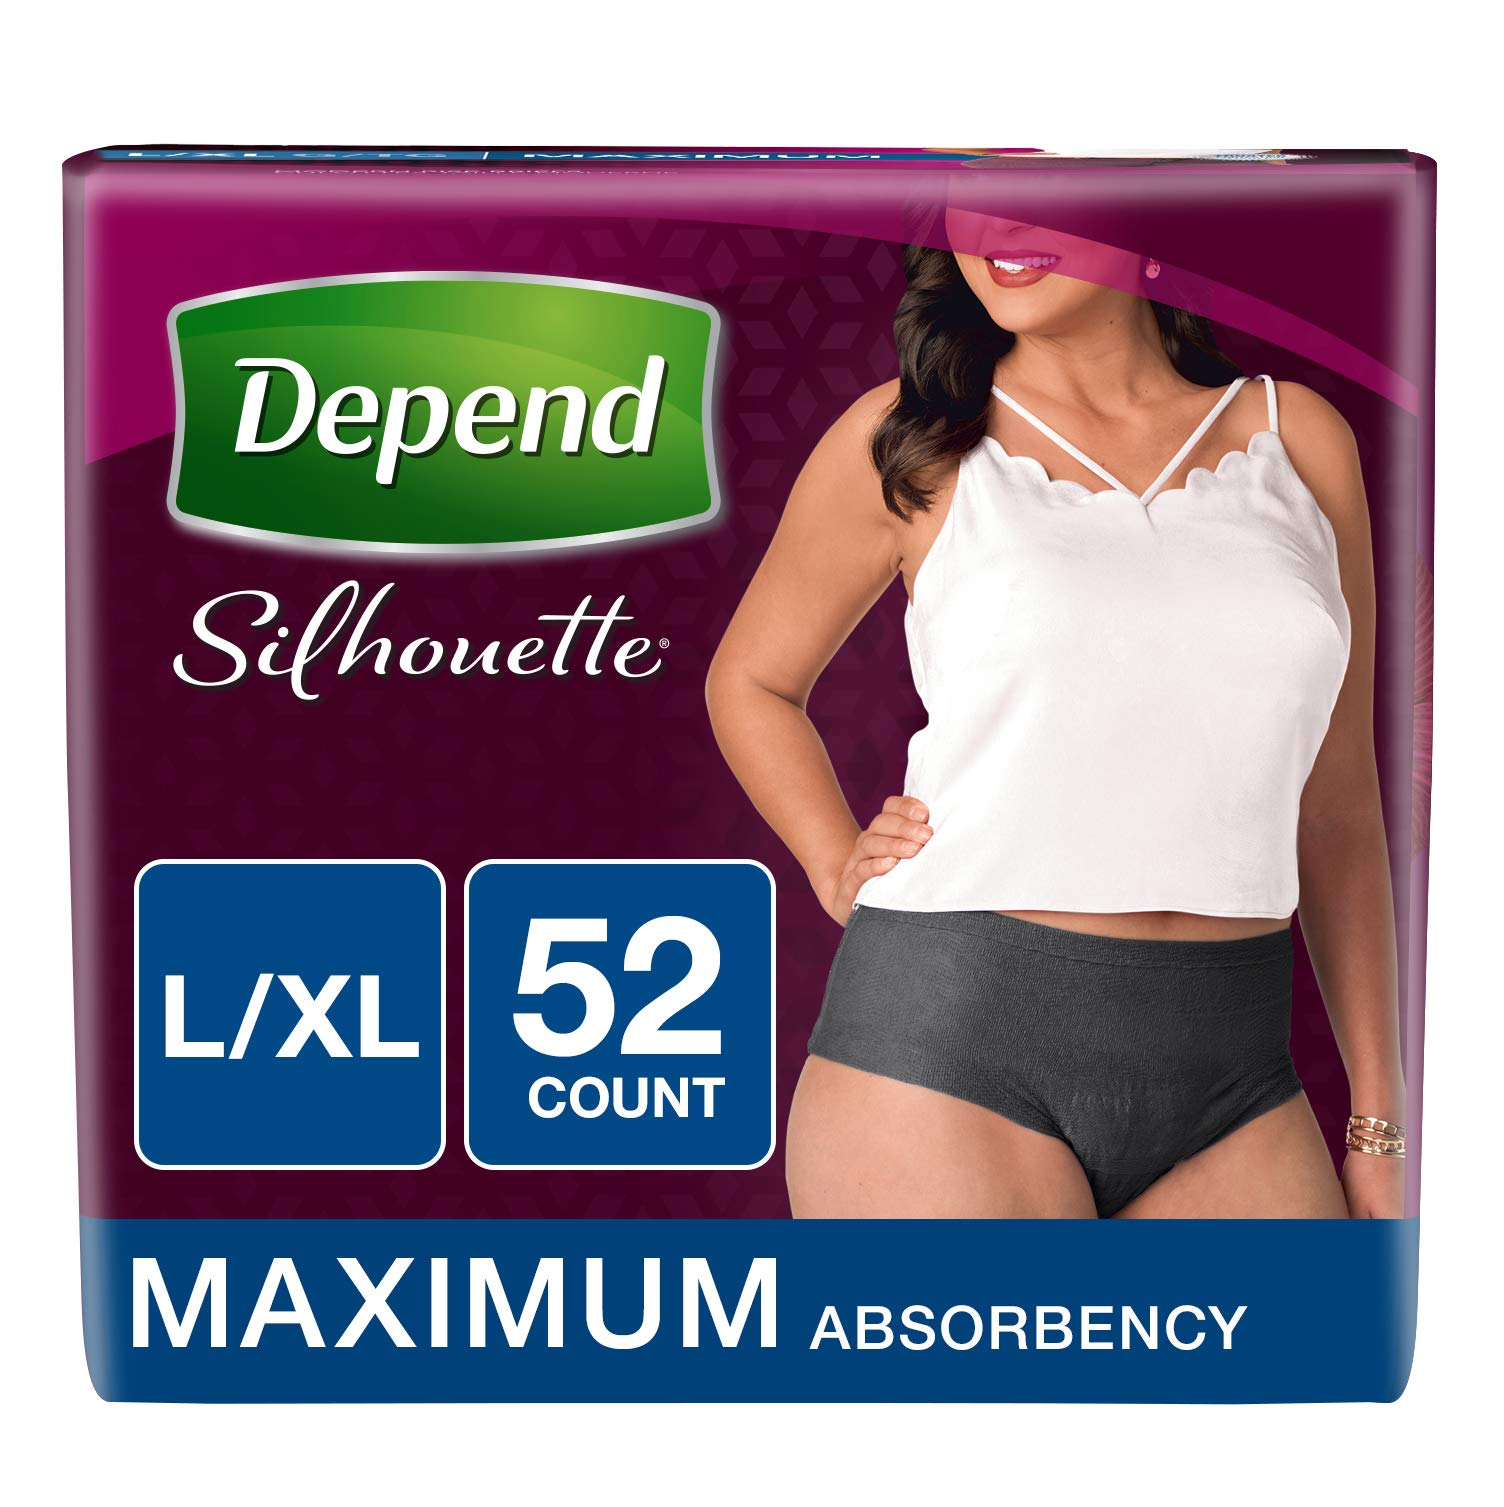 Depend Silhouette Incontinence Underwear for Women, Maximum Absorbency, L/XL, Black, 52 Count by Depend